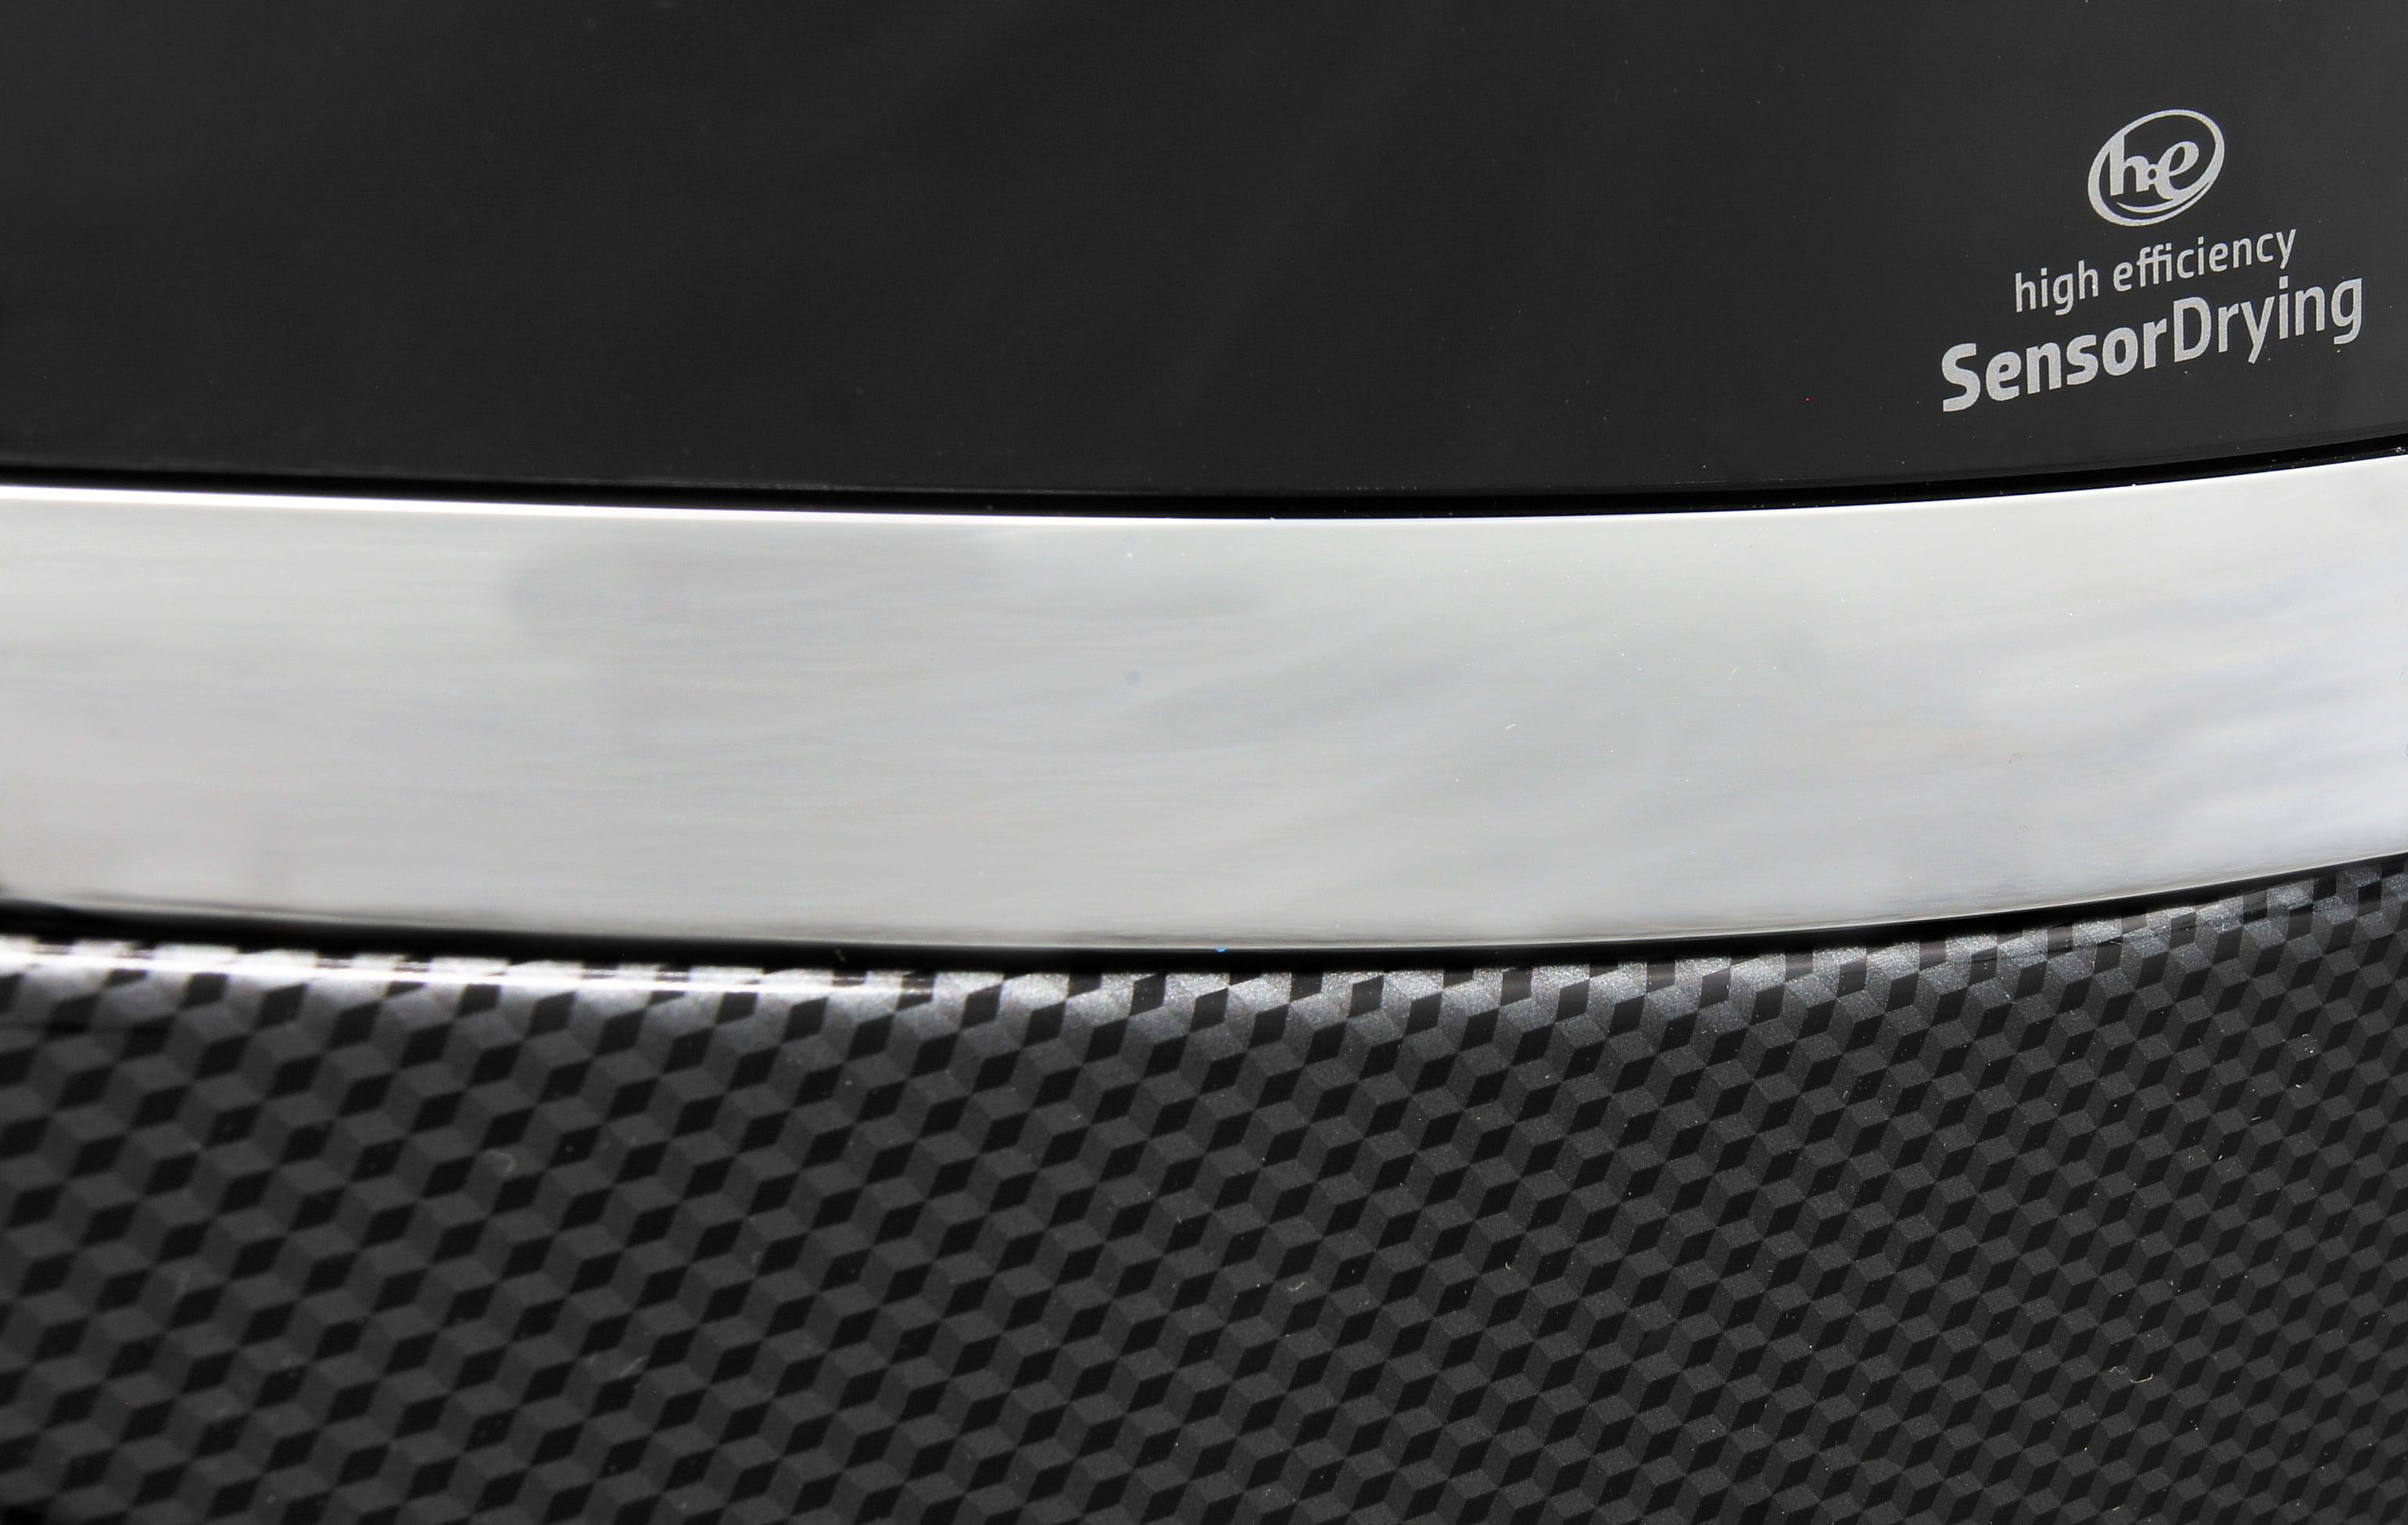 The Whirlpool Duet WED97HEDBD's special black diamond finish was created based on a consumer vote at CES 2014.